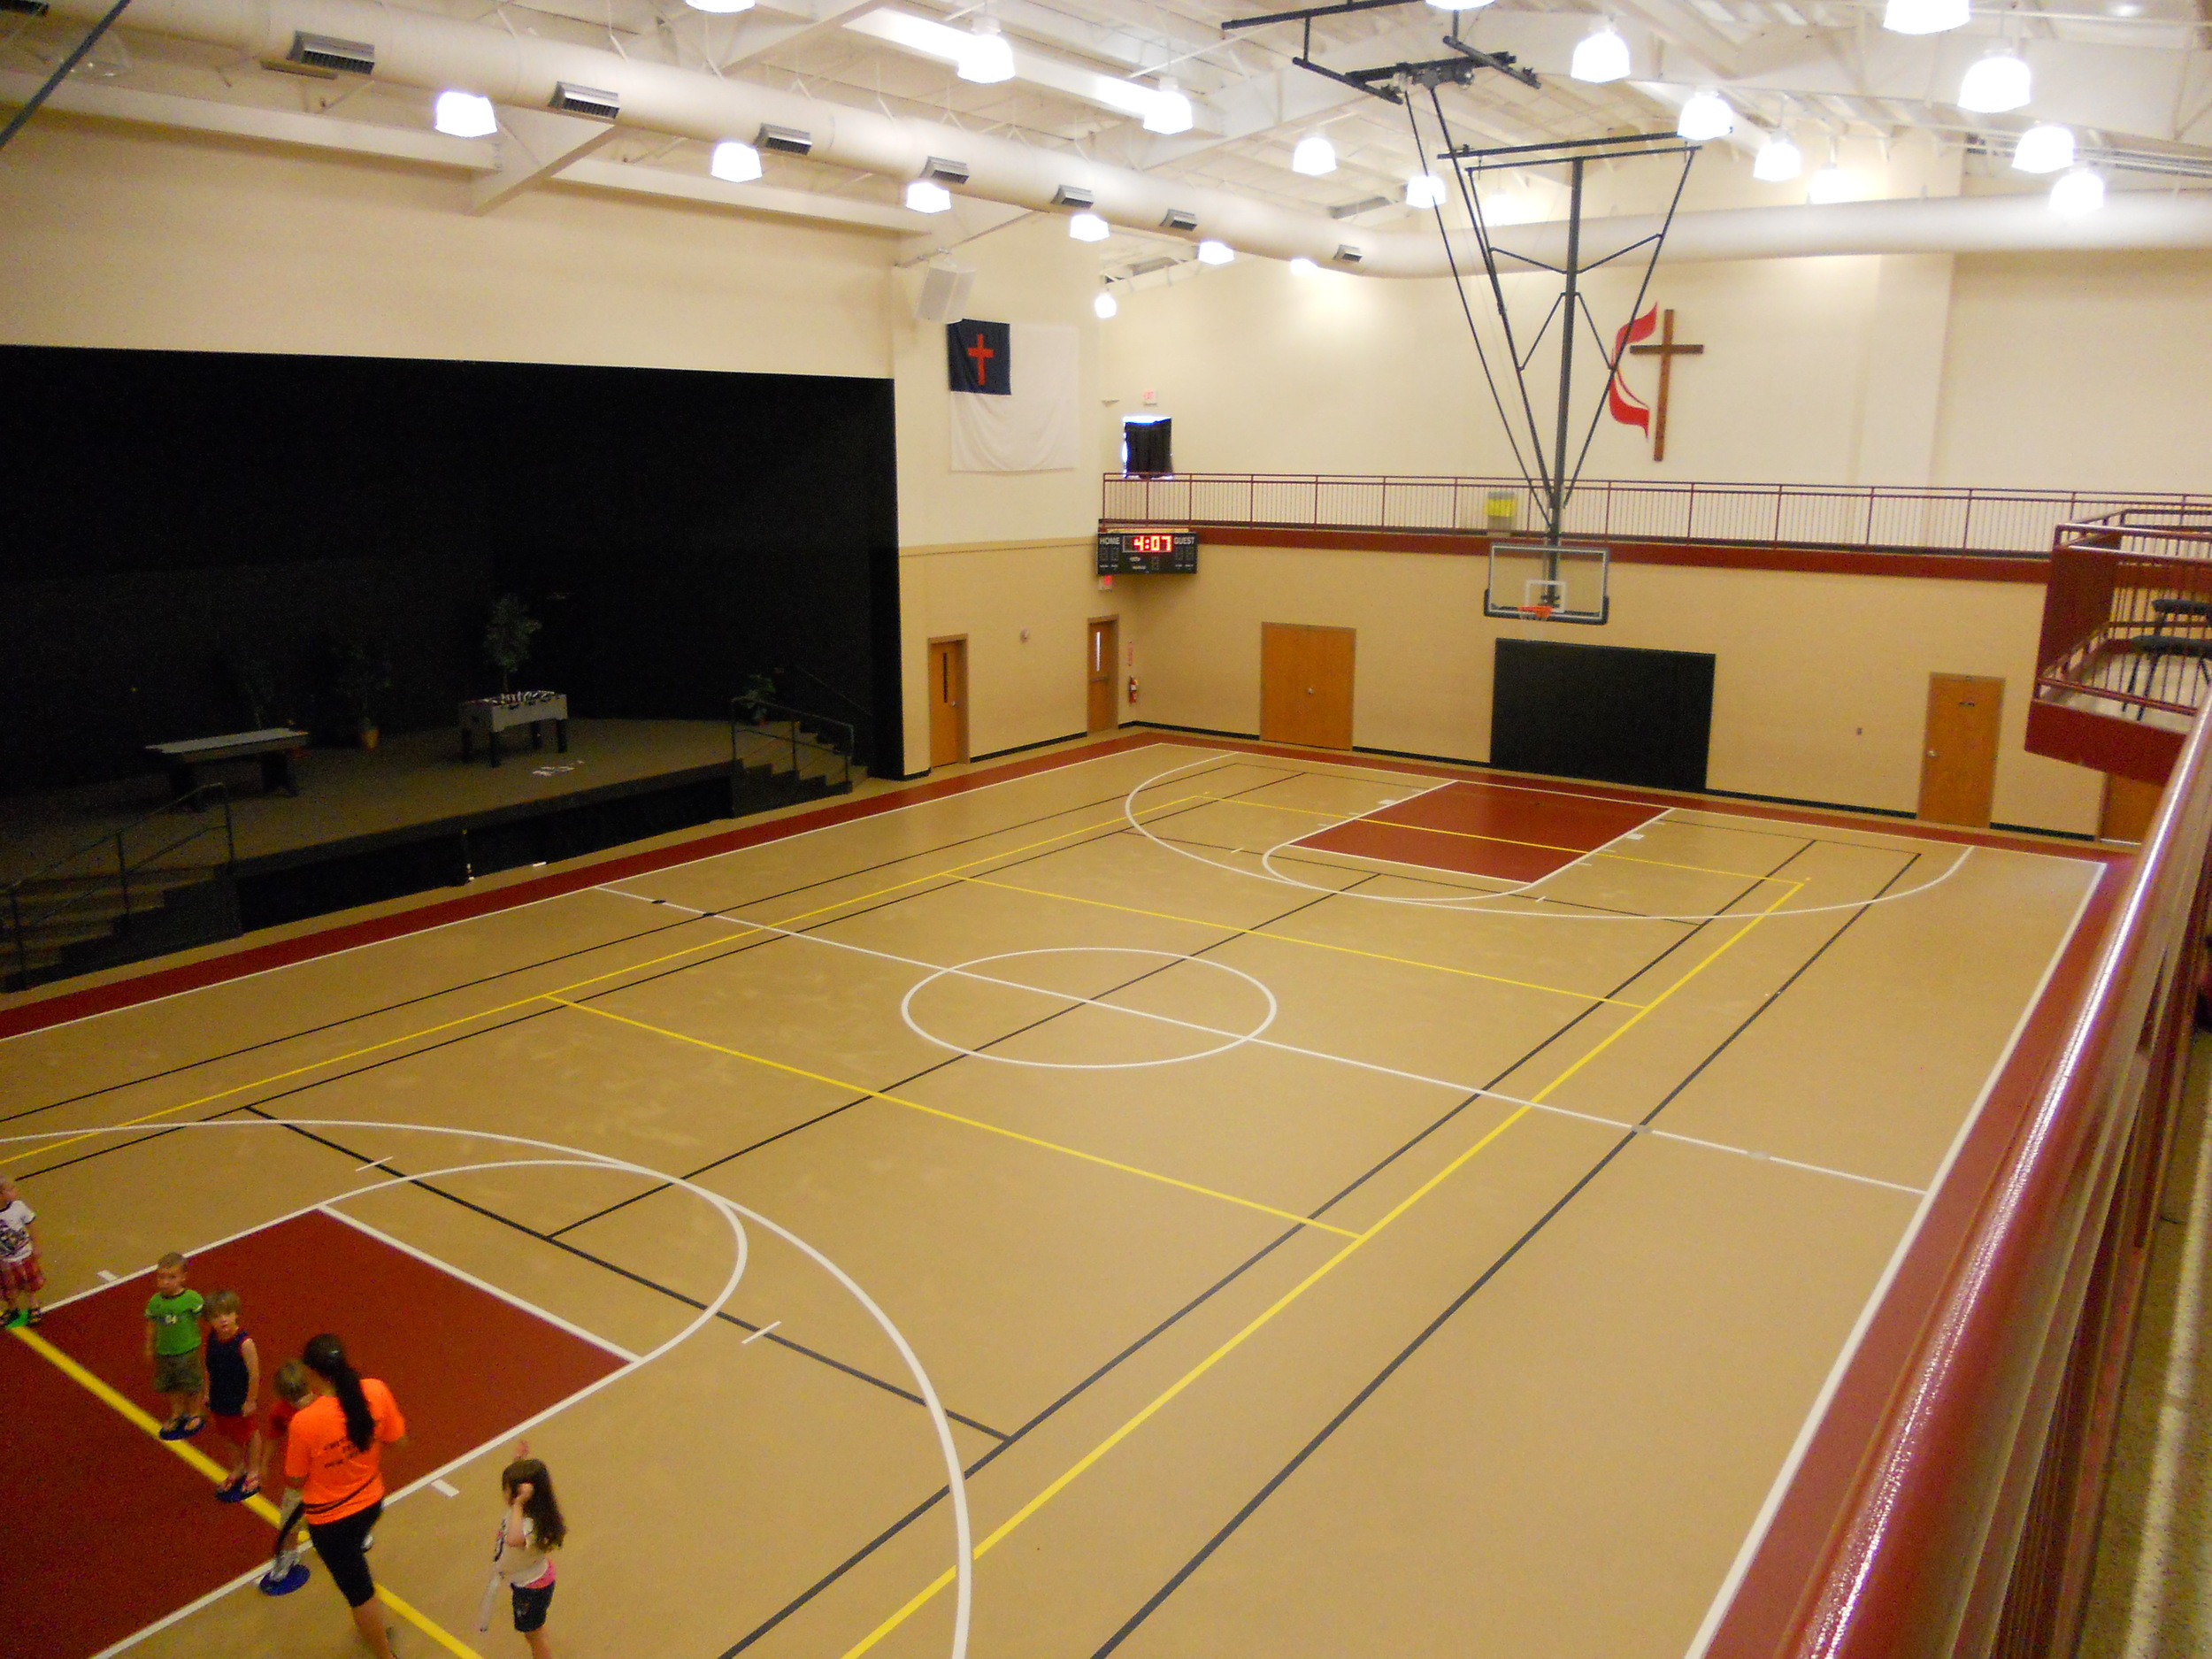 Gym with stage area on the left; walking track on upper level